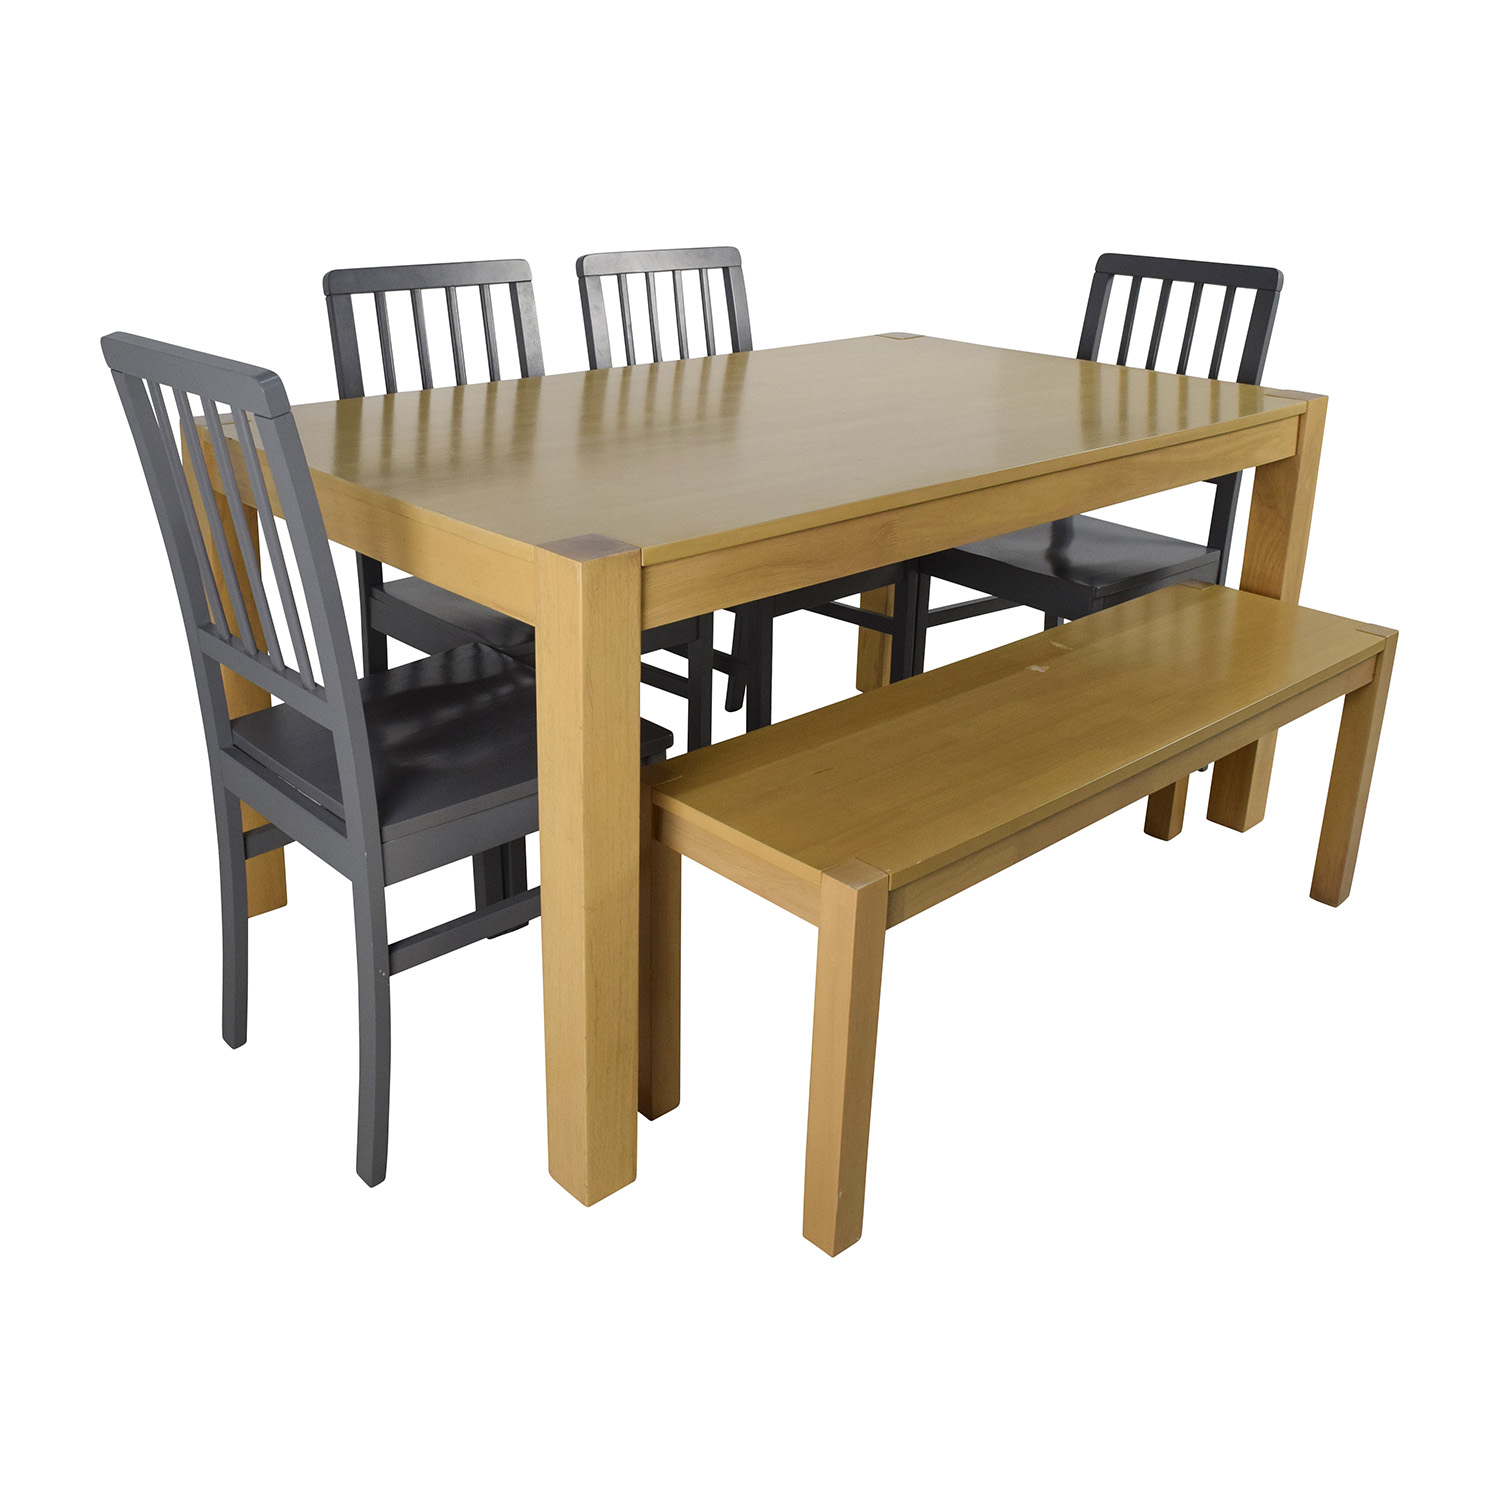 Superieur 48% OFF   Wooden Dinner Set With Bench Seat / Tables